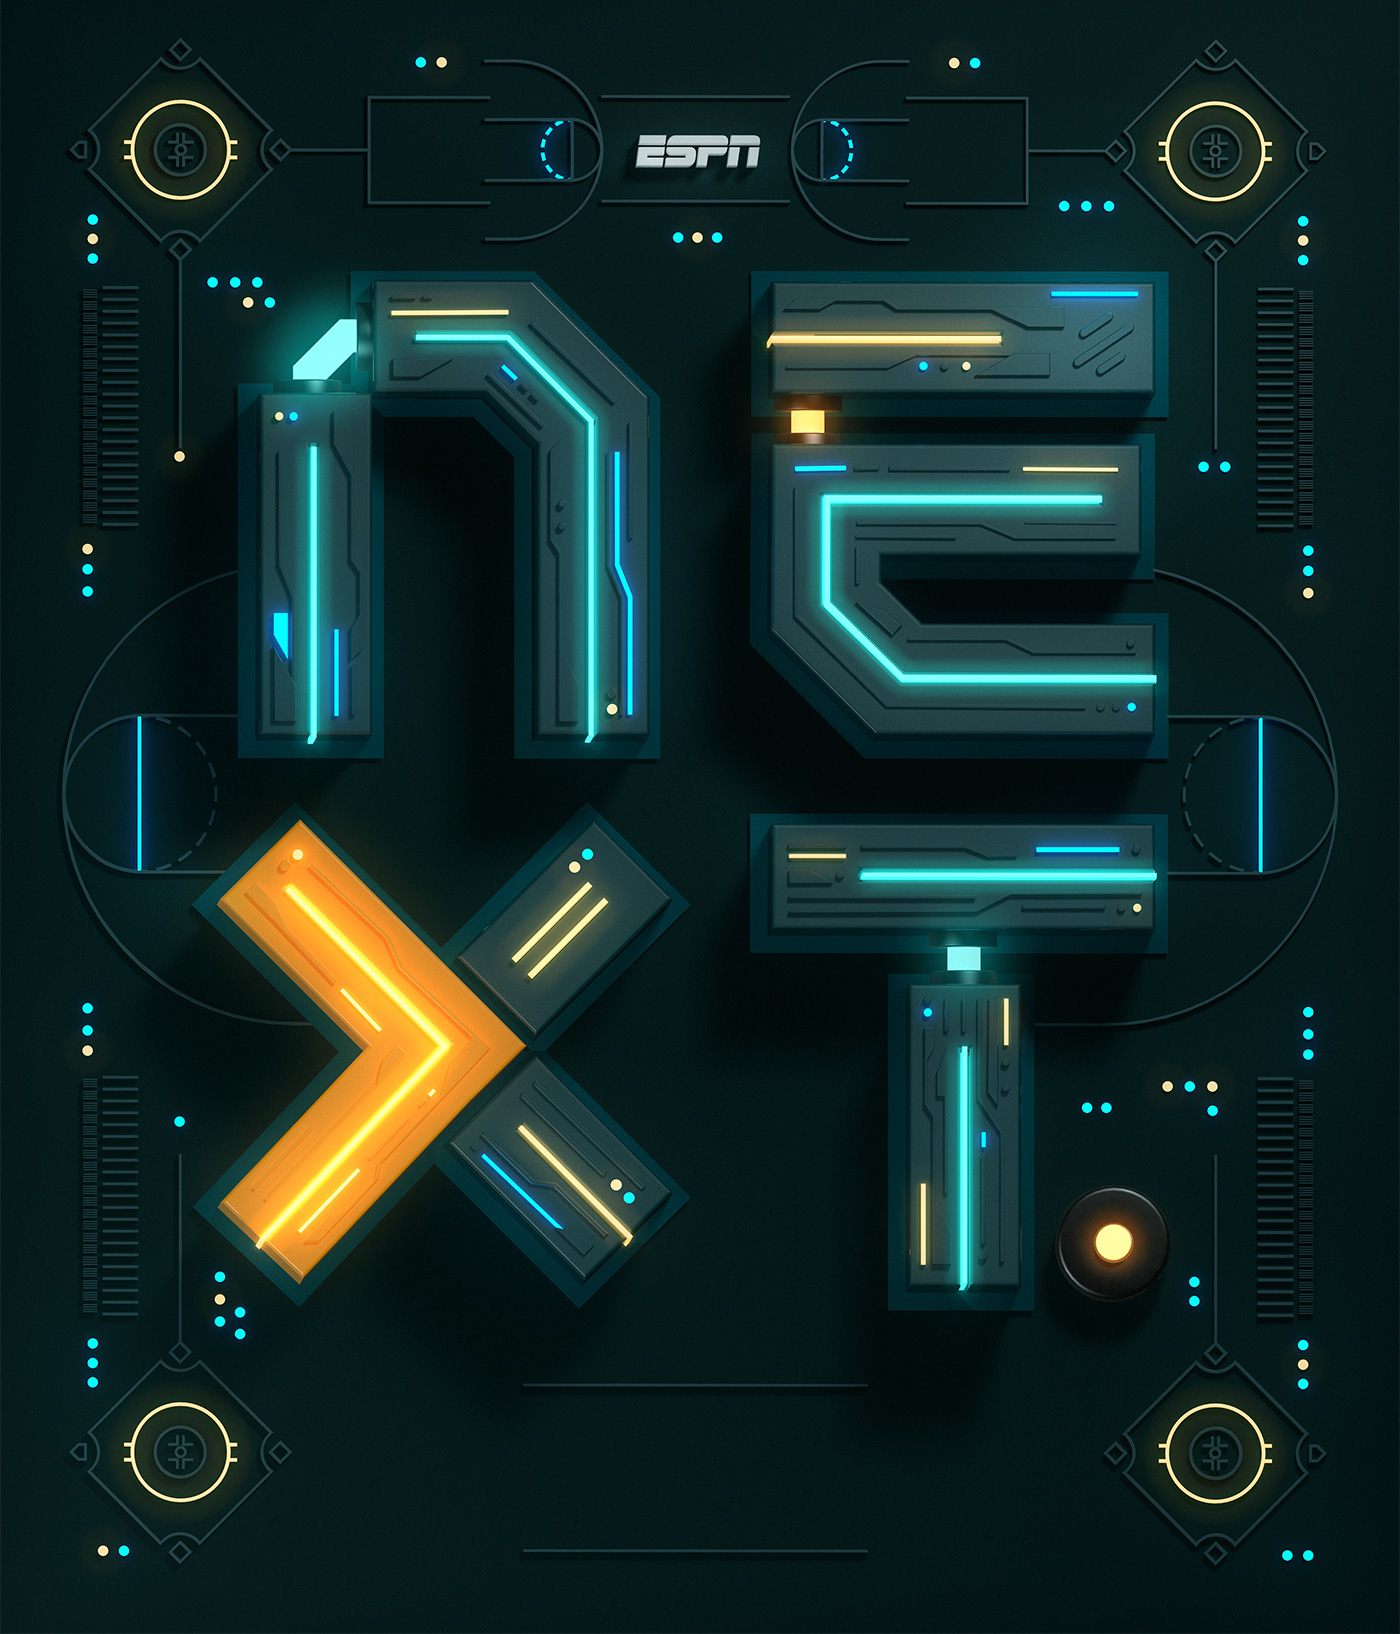 Typographic Illustration for ESPN NEXT